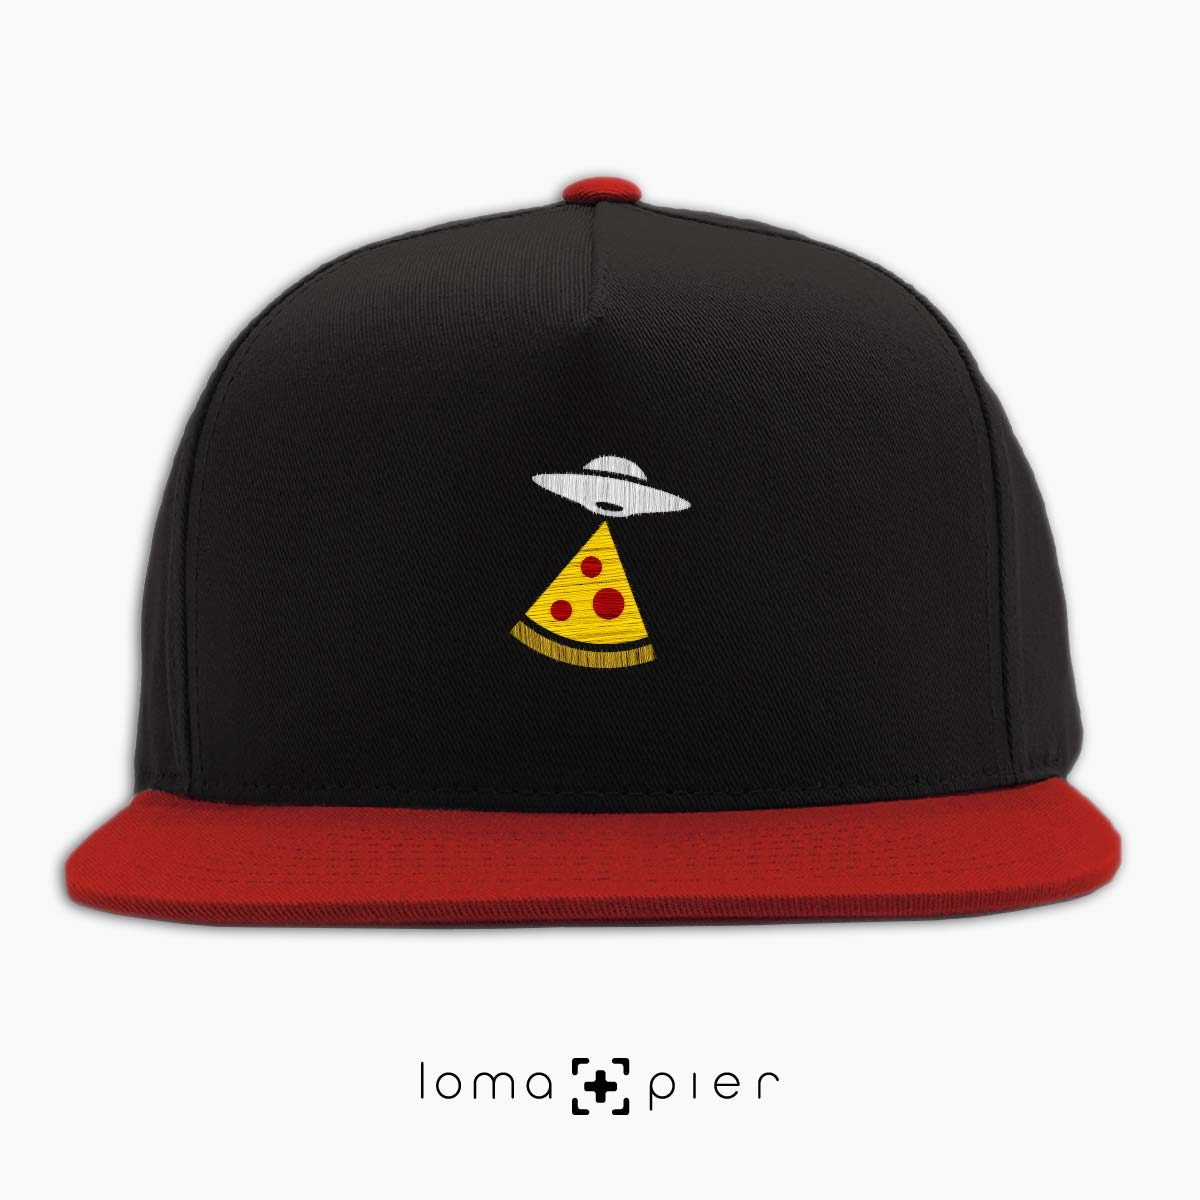 UFO PIZZA icon embroidered on a black and red classic snapback hat with multicolor thread by loma+pier hat store